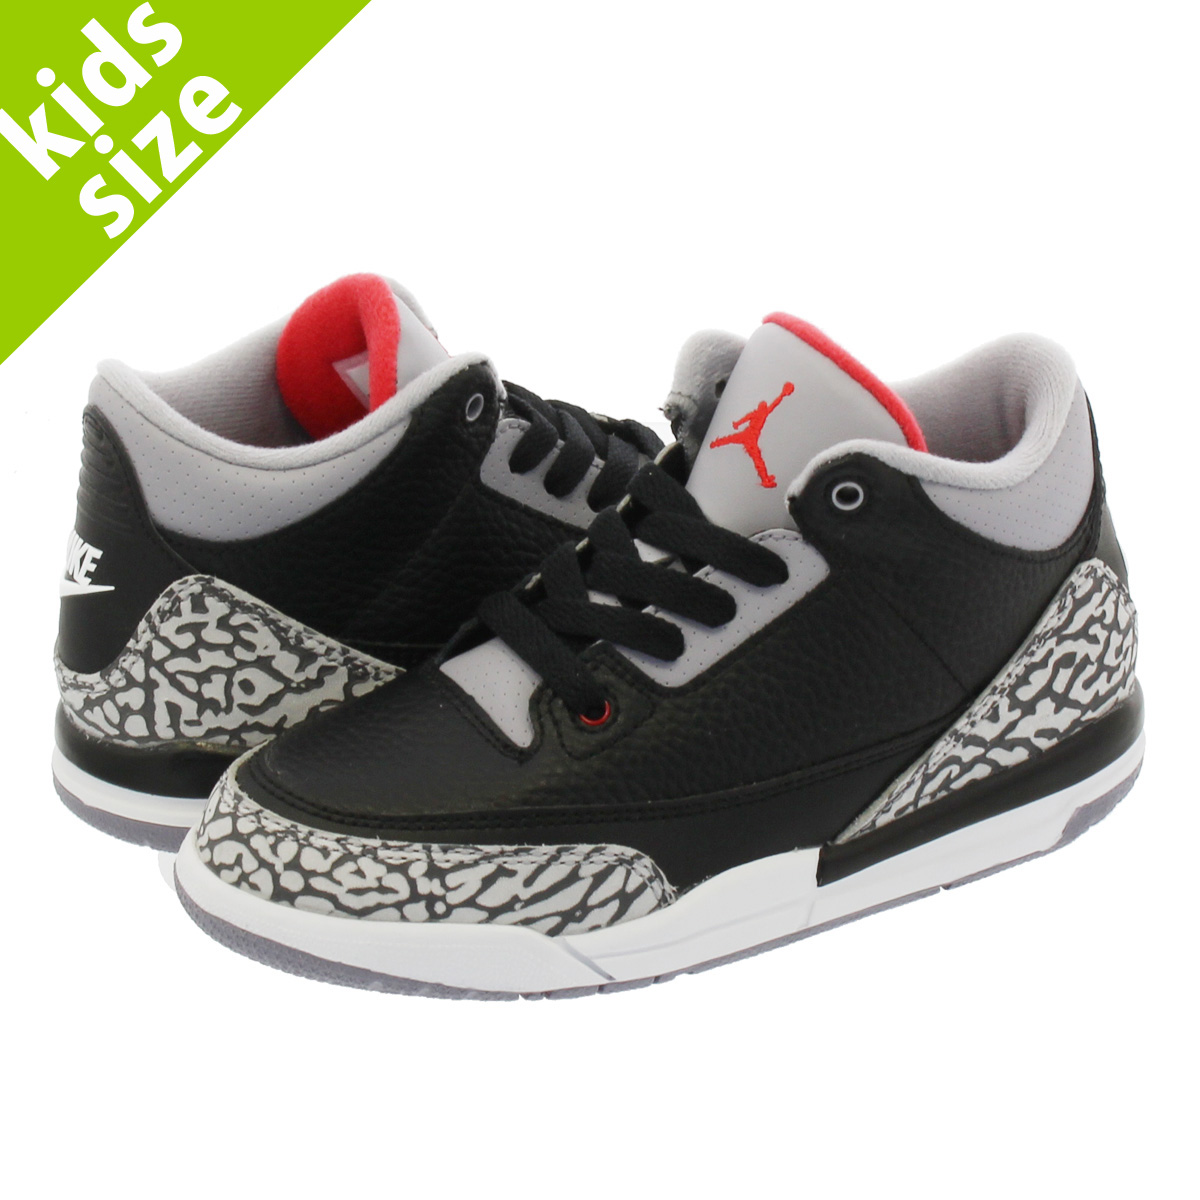 9dbaa3de2c3 NIKE AIR JORDAN 3 RETRO BP Nike Air Jordan 3 nostalgic BP BLACK/FIRE RED ...